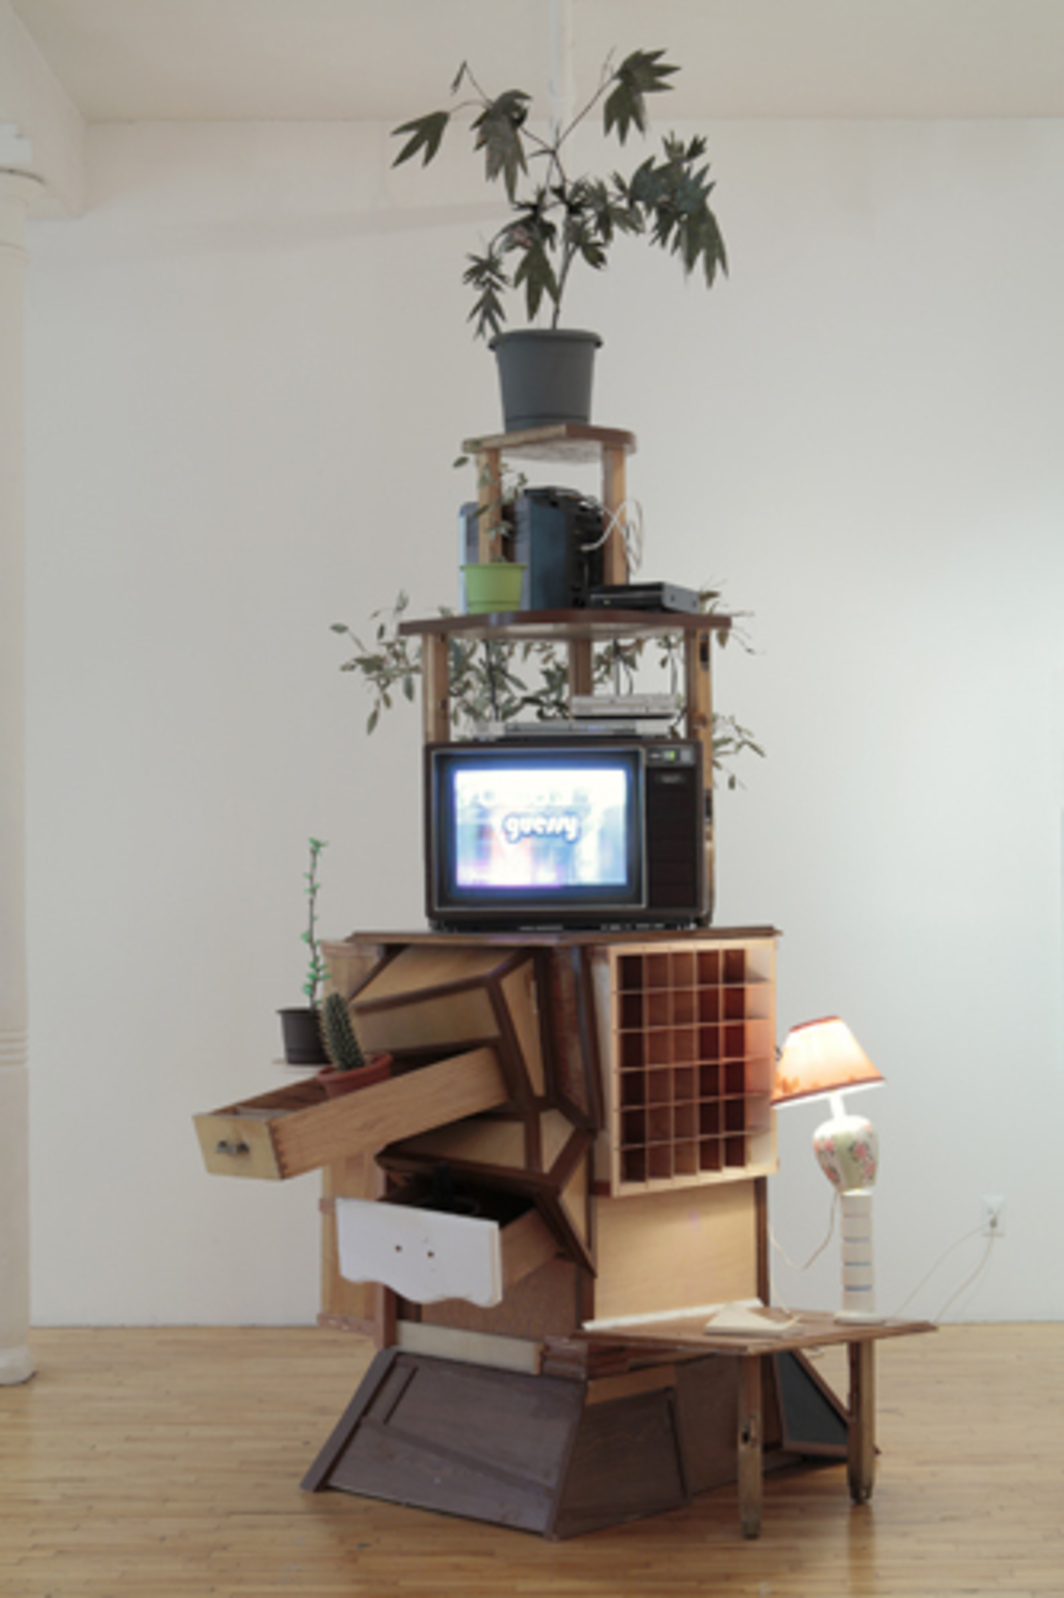 "David Snyder, Medium Power, 2011, wood, books, lamp, monitors, CD player, DVD players, mixed media, plants, 53 x 24 x 22""."